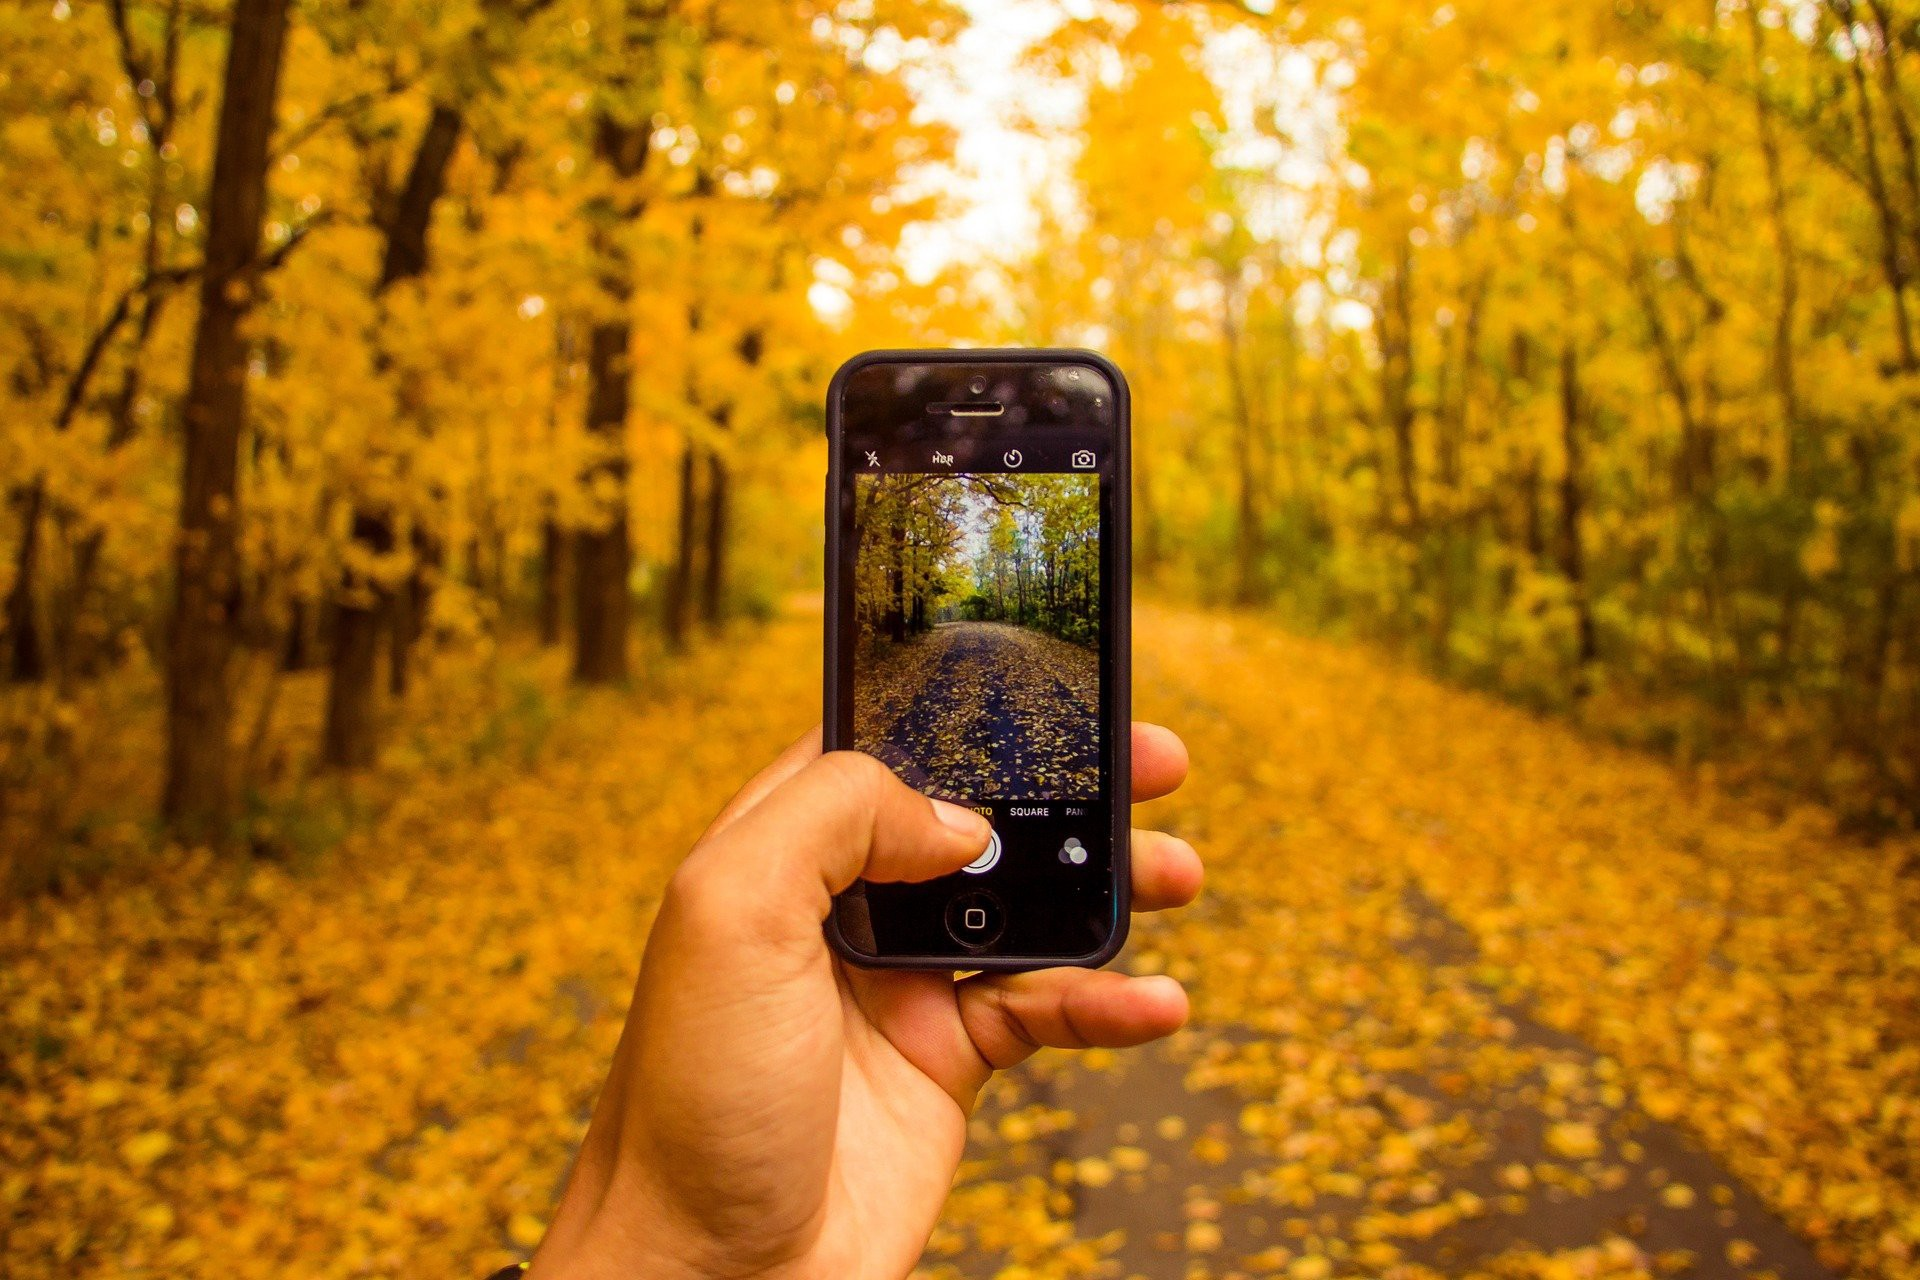 A person walking through a forest of golden leaves while taking photos with a cell phone.